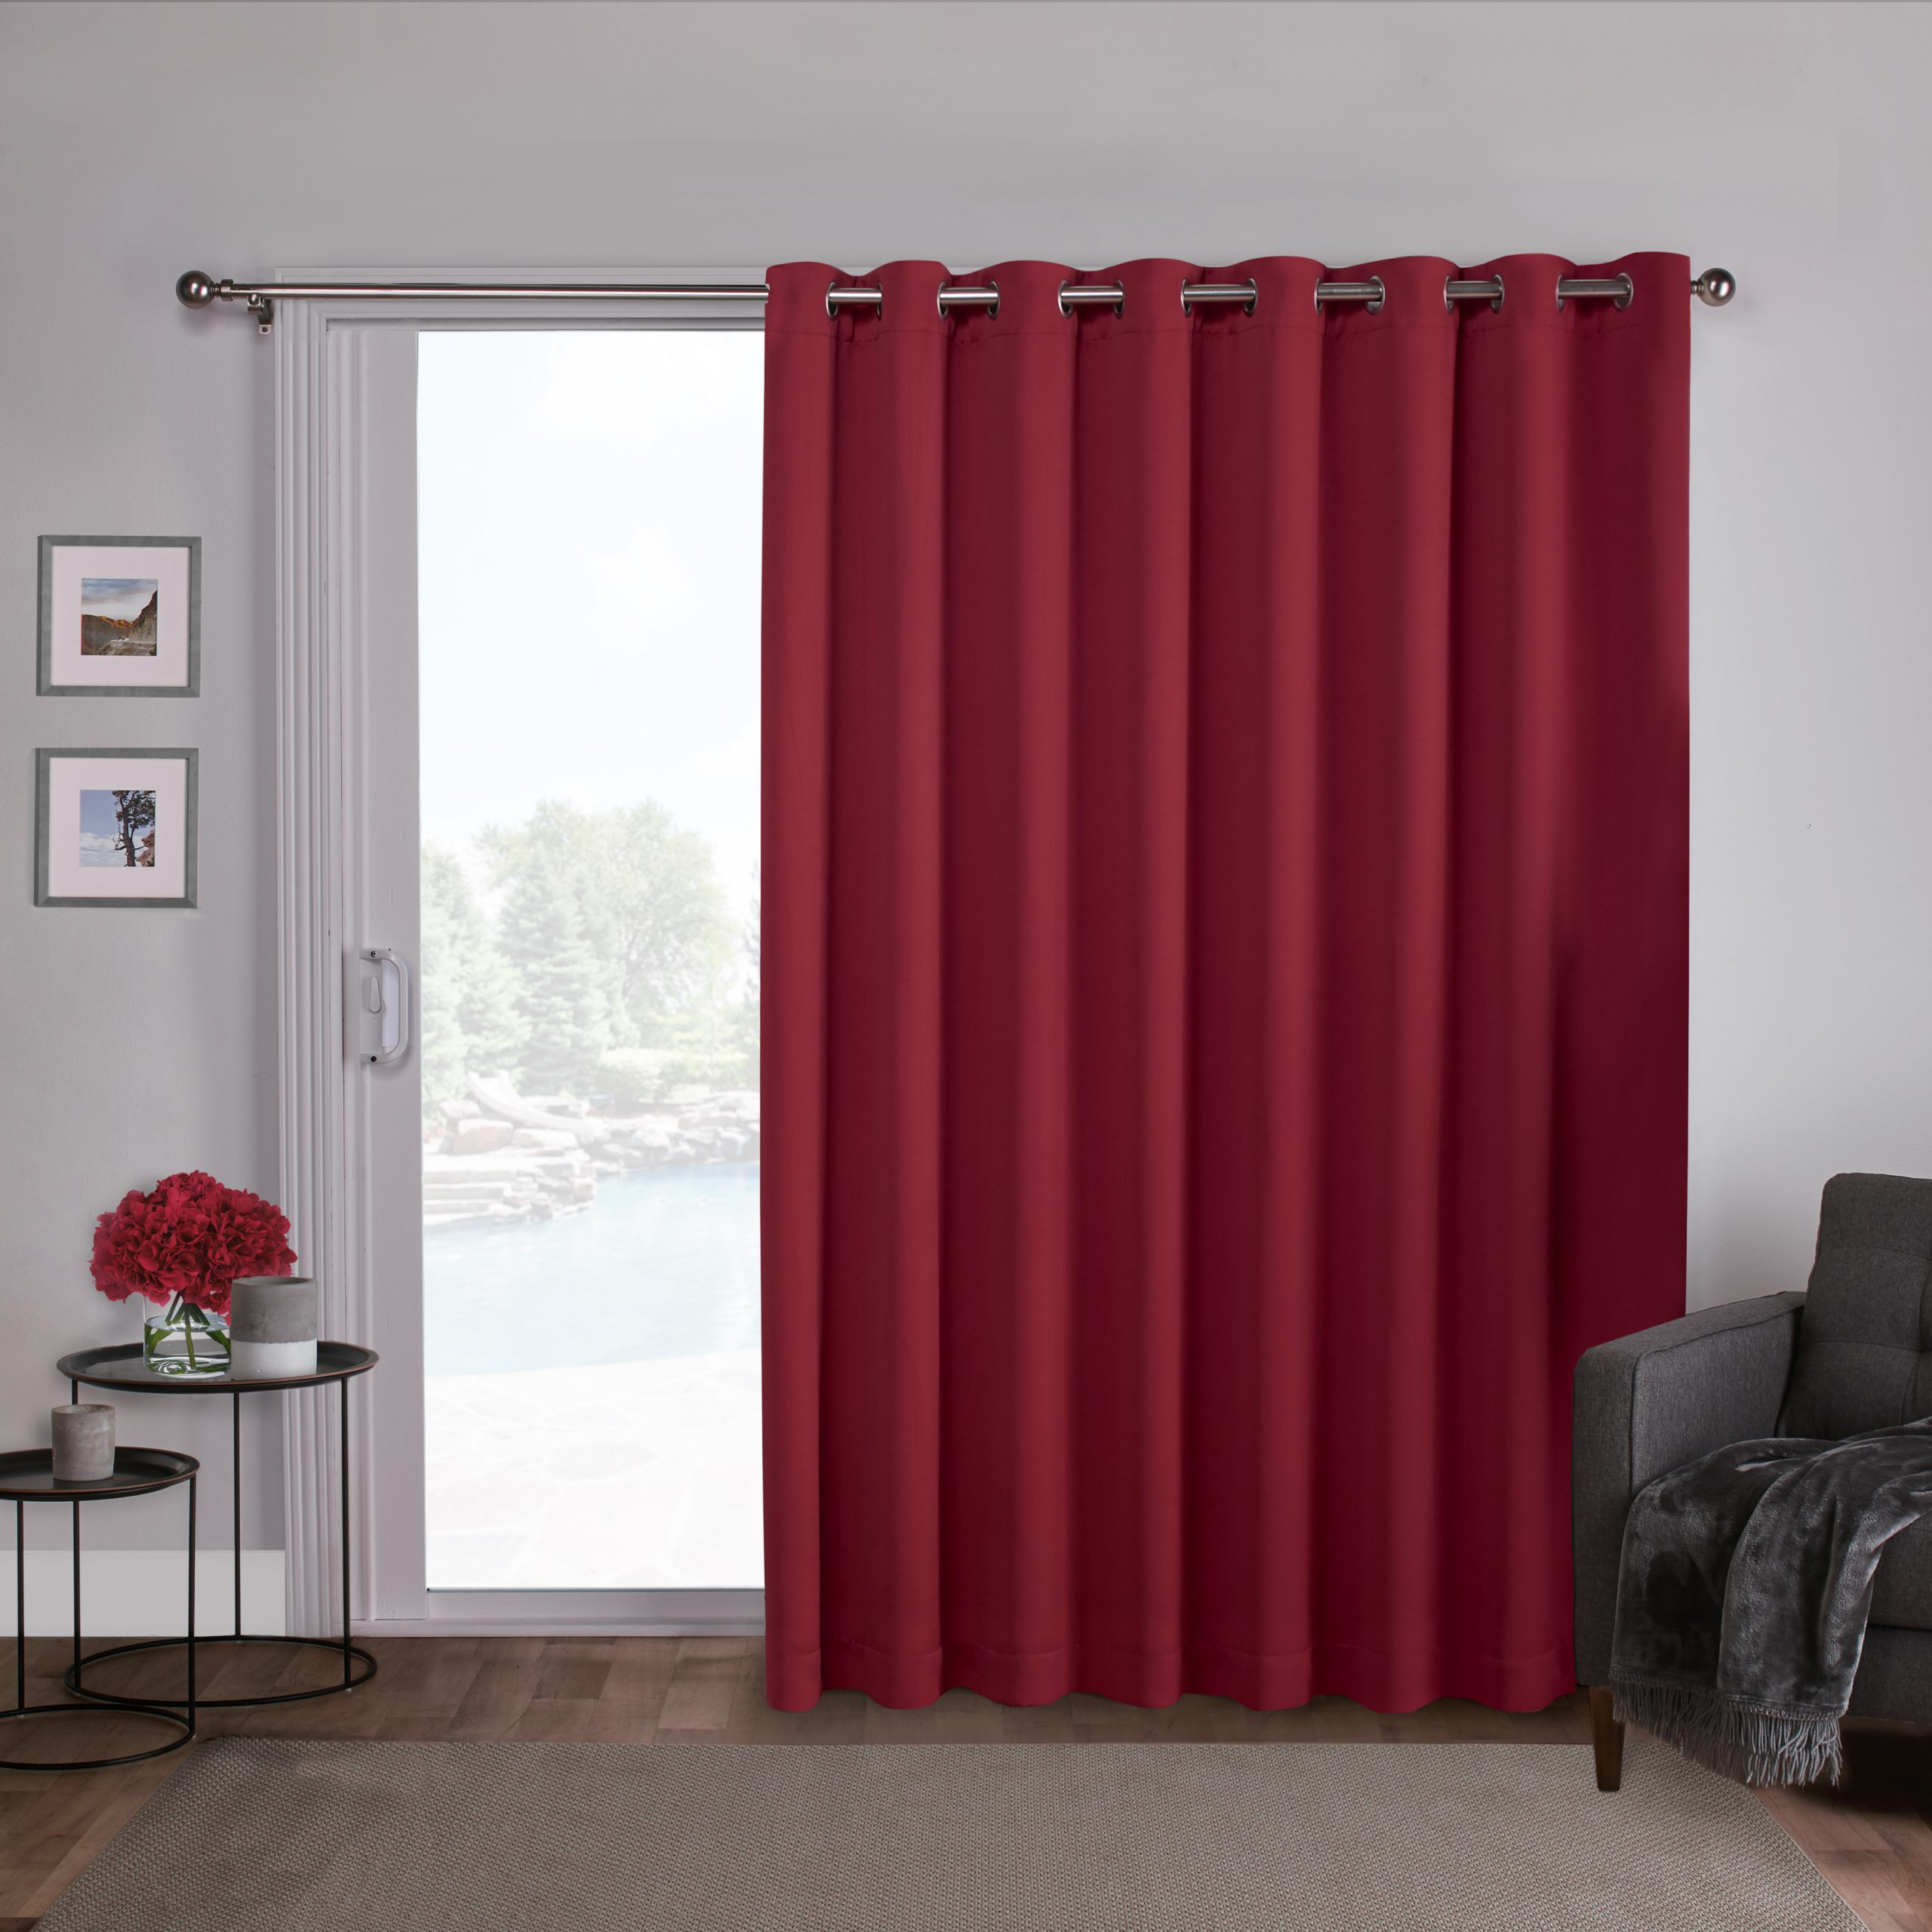 Patio Grommet Top Single Curtain Panels With Regard To Most Recently Released Exclusive Home Curtains 1 Pack Sateen Blackout Wide Patio Grommet Top Single Curtain Panel (View 16 of 20)